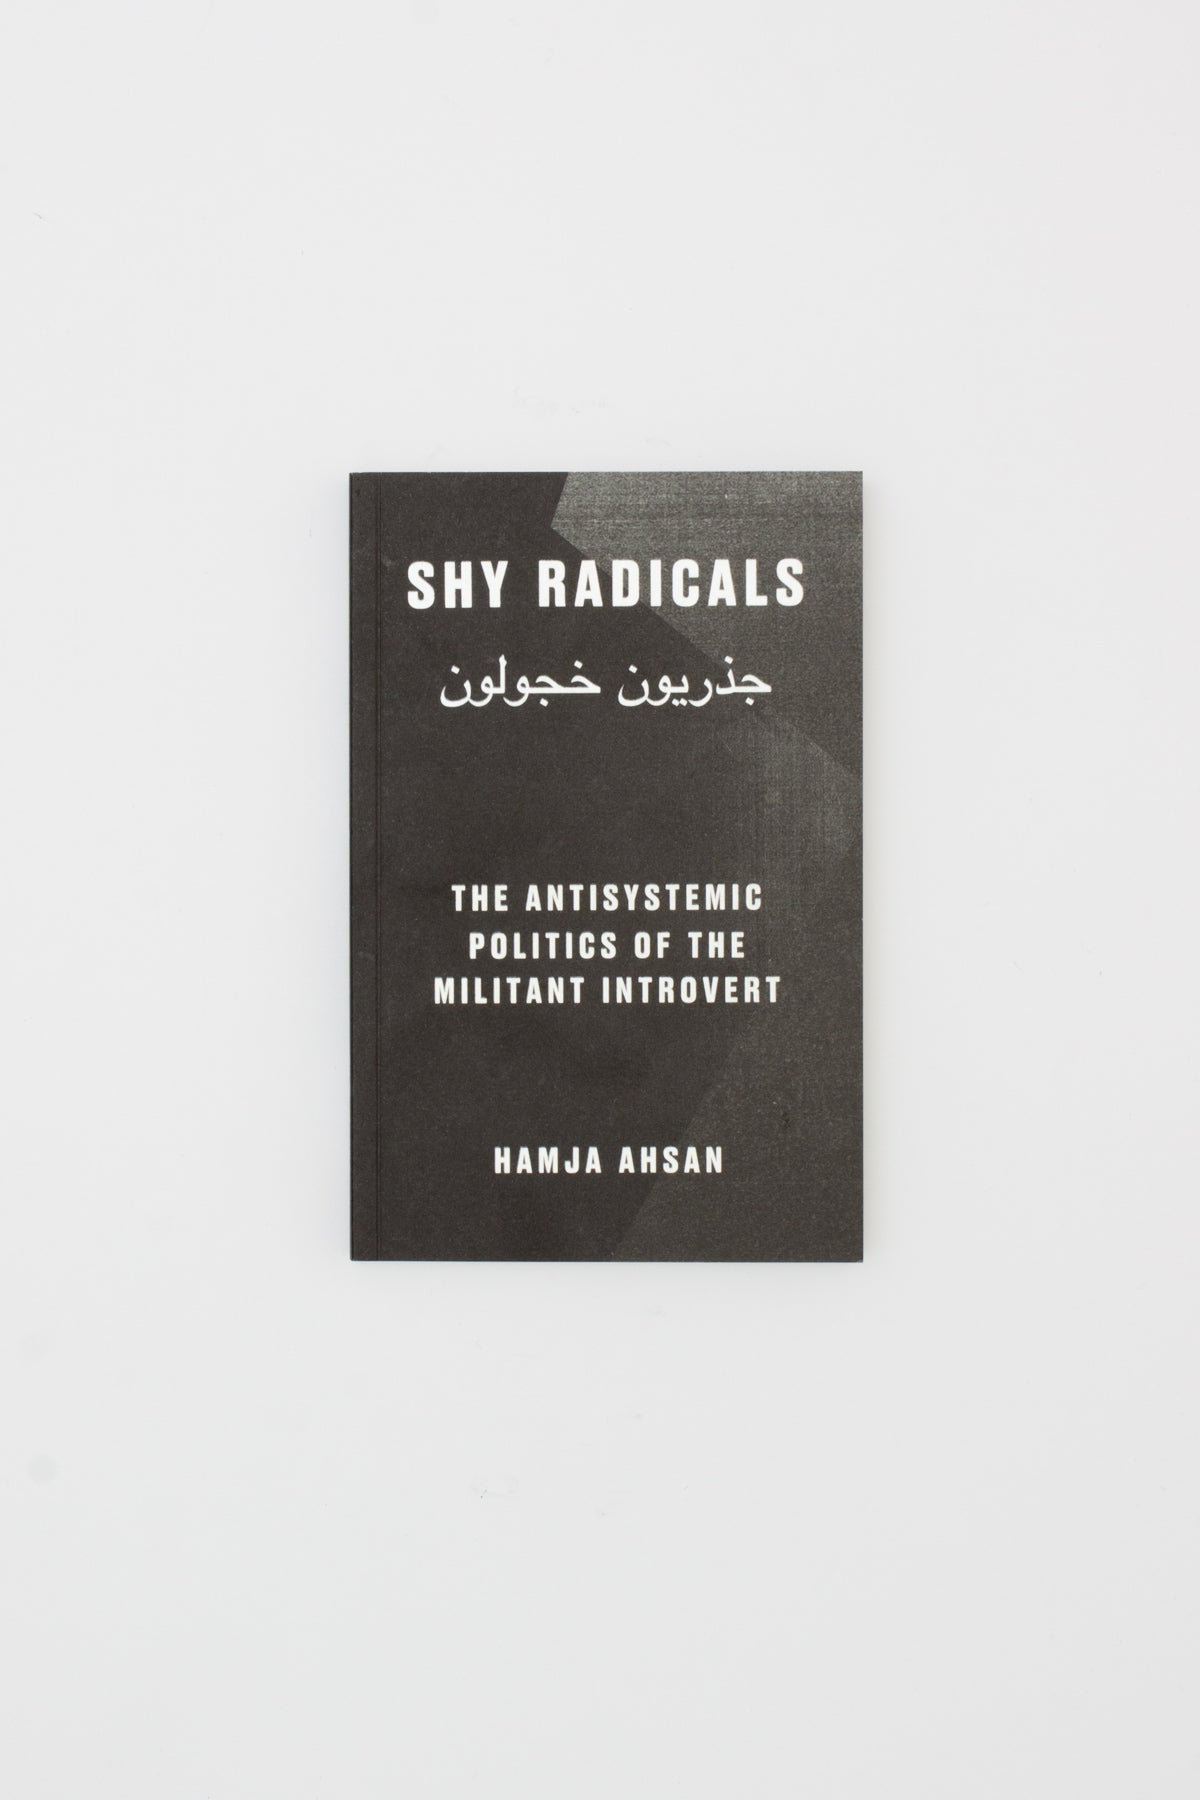 Shy Radicals: The Antisystemic Politics of the Militant Introvert - Hamja Ahsan